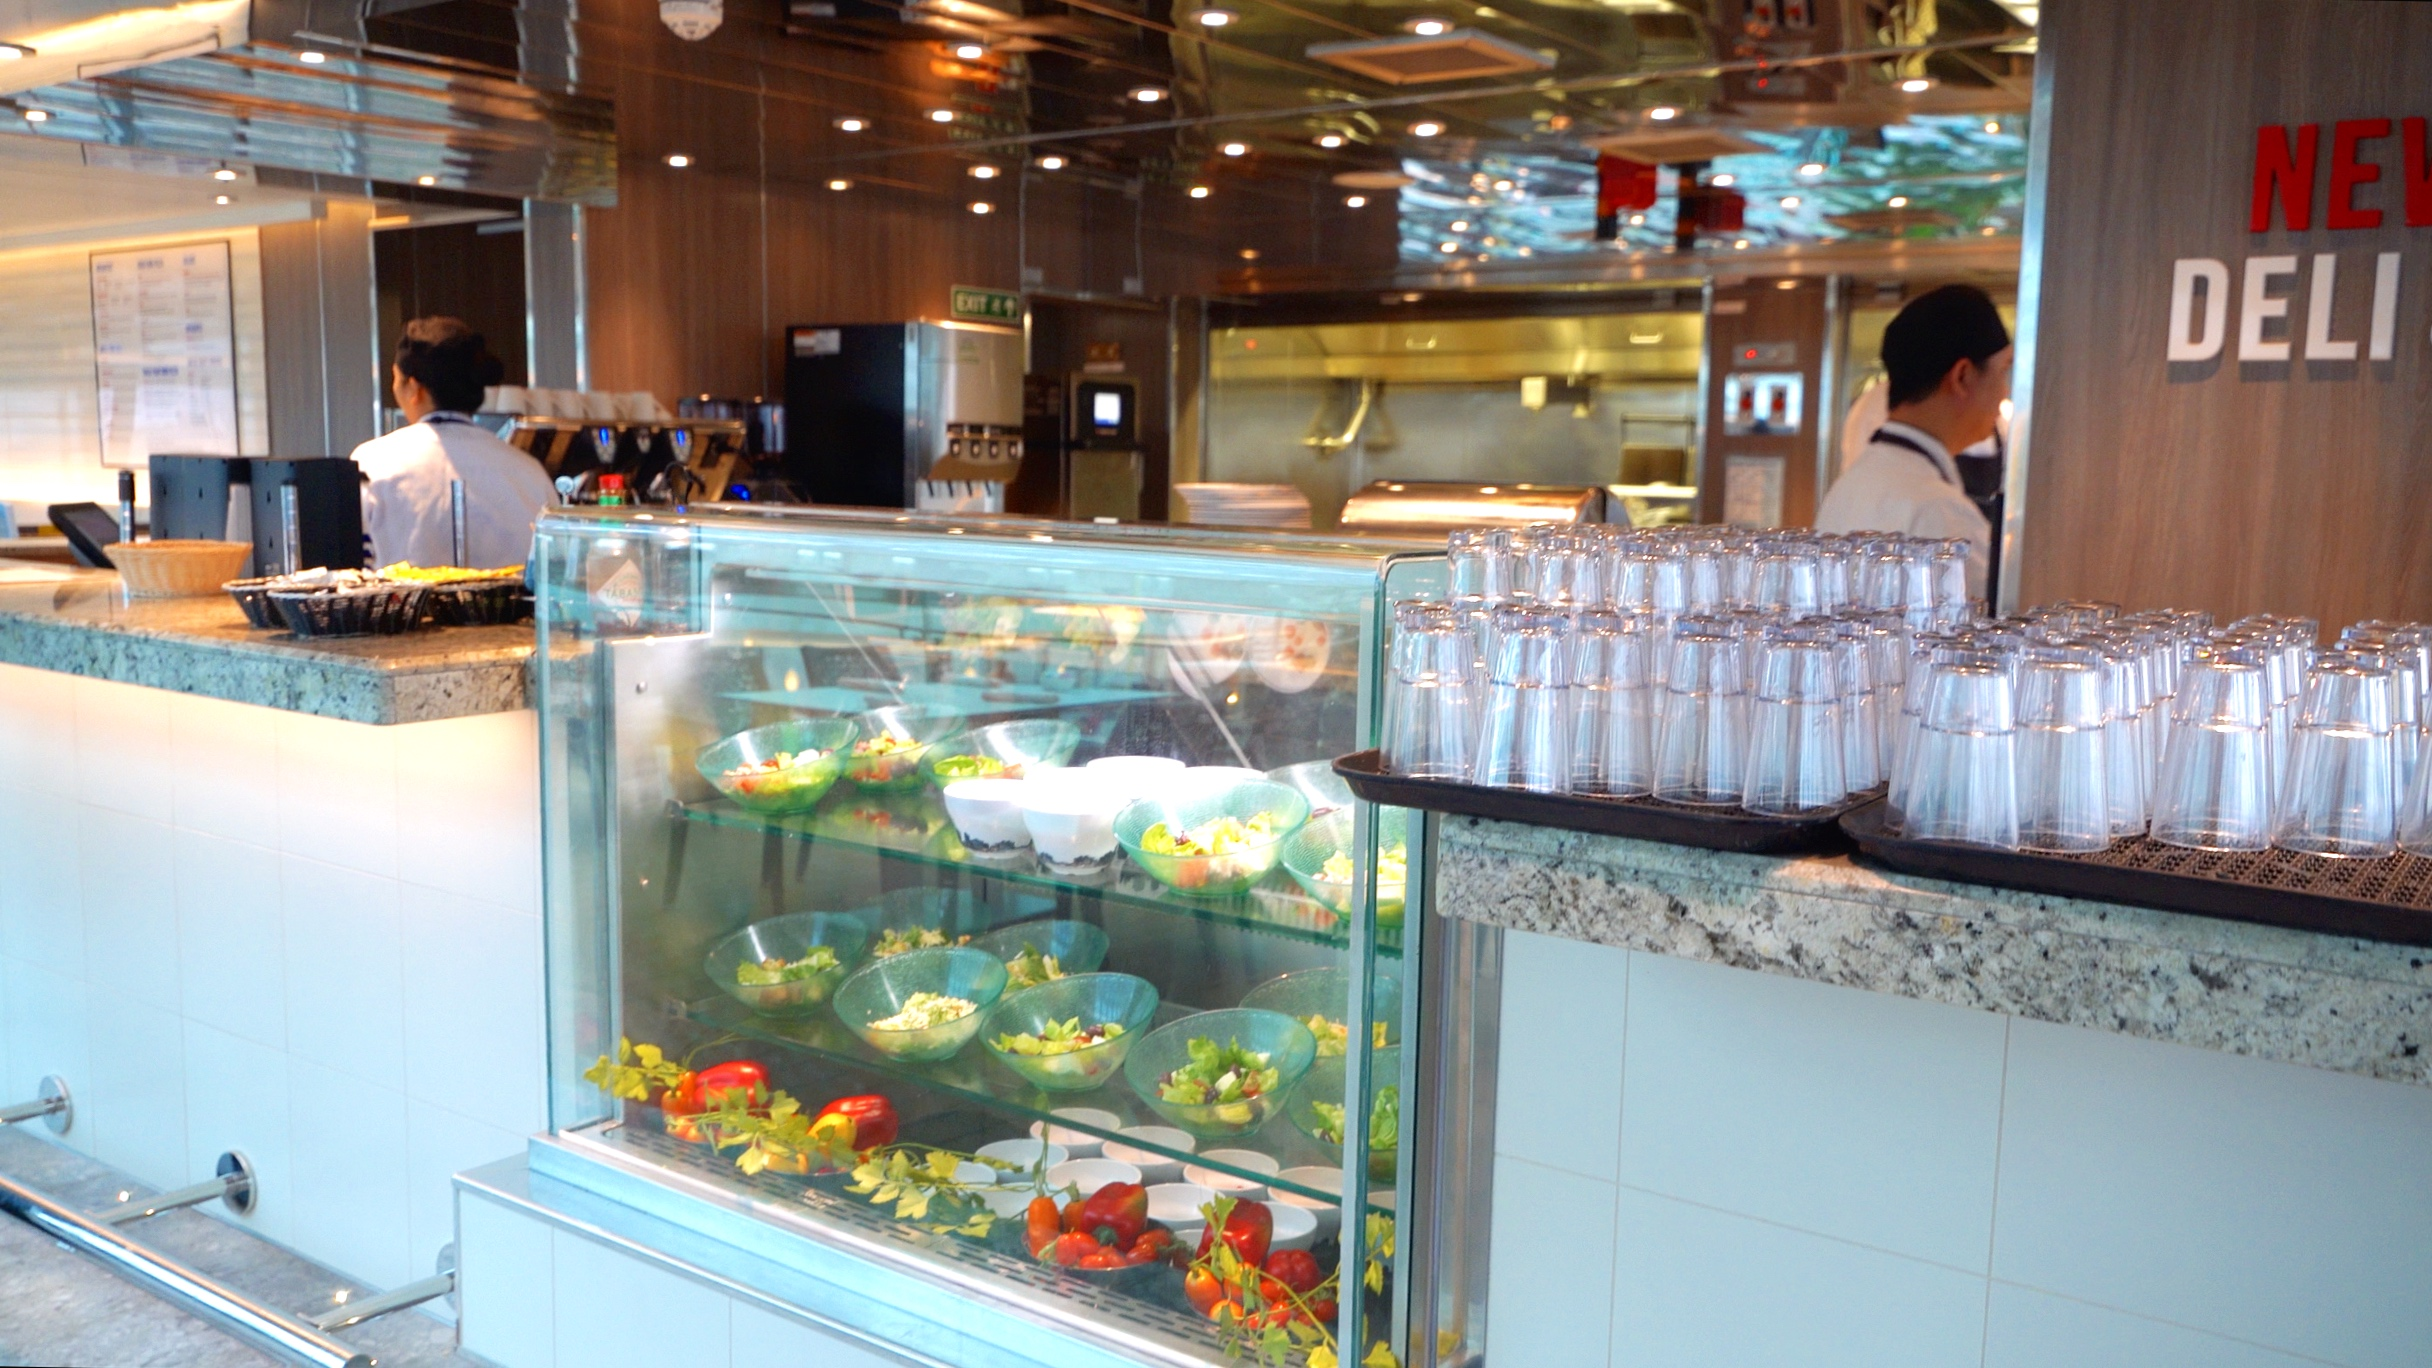 The New York deli and pizza bar, serving freshly made pizzas and salads.